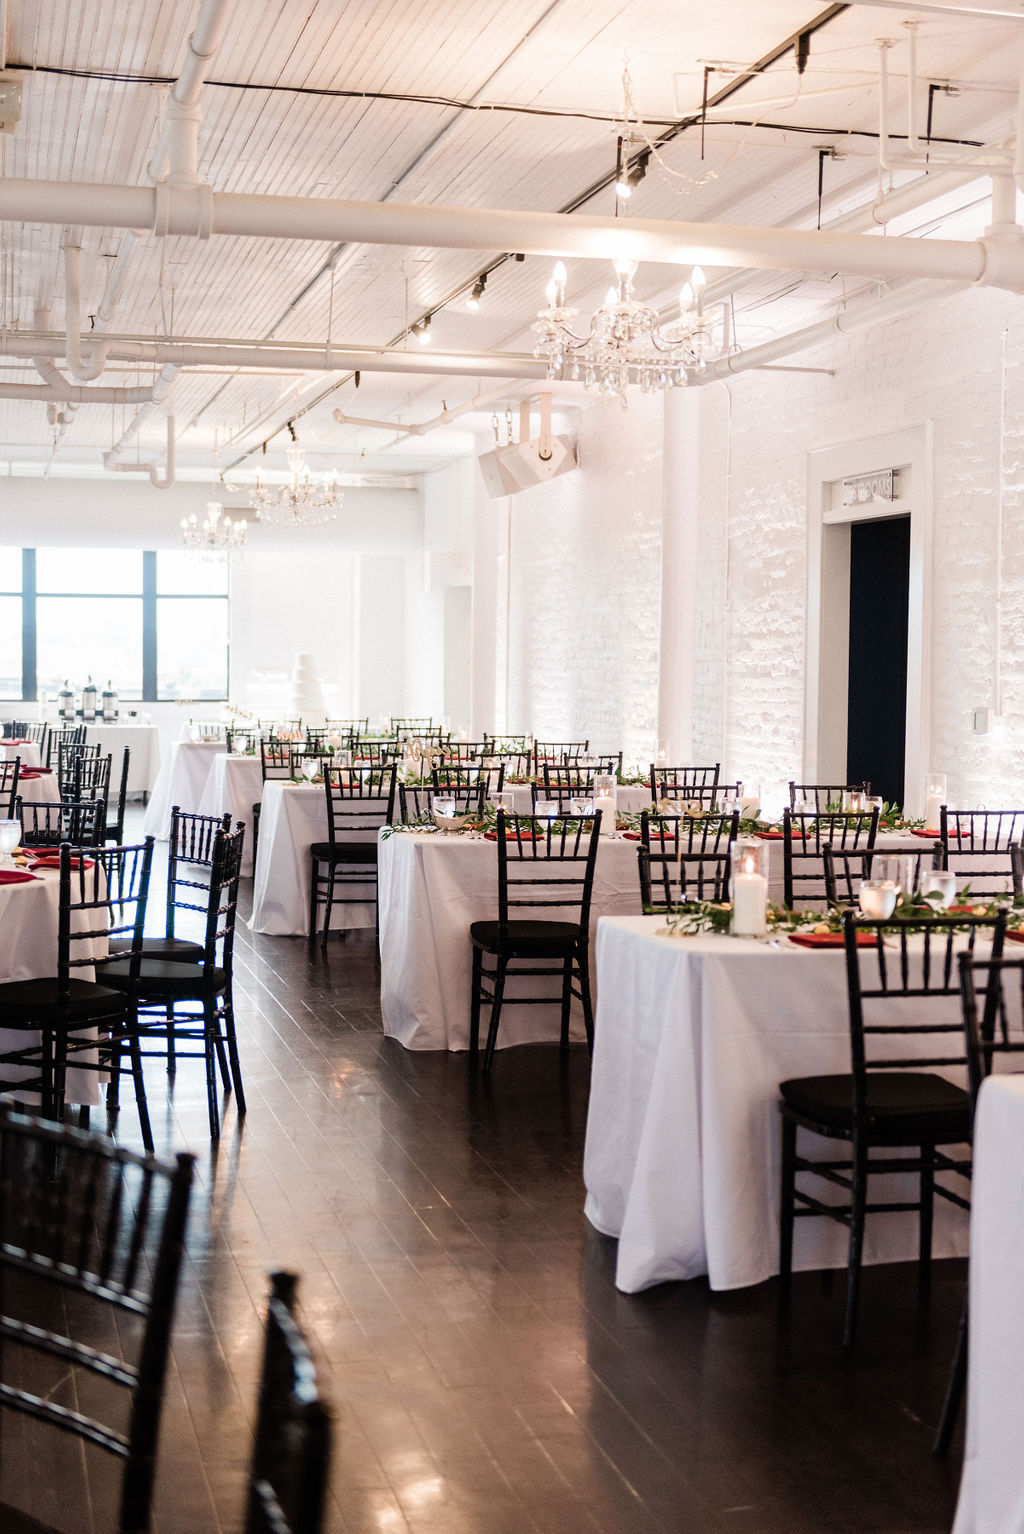 Tables set for a downtown kalamazoo wedding at Loft 310